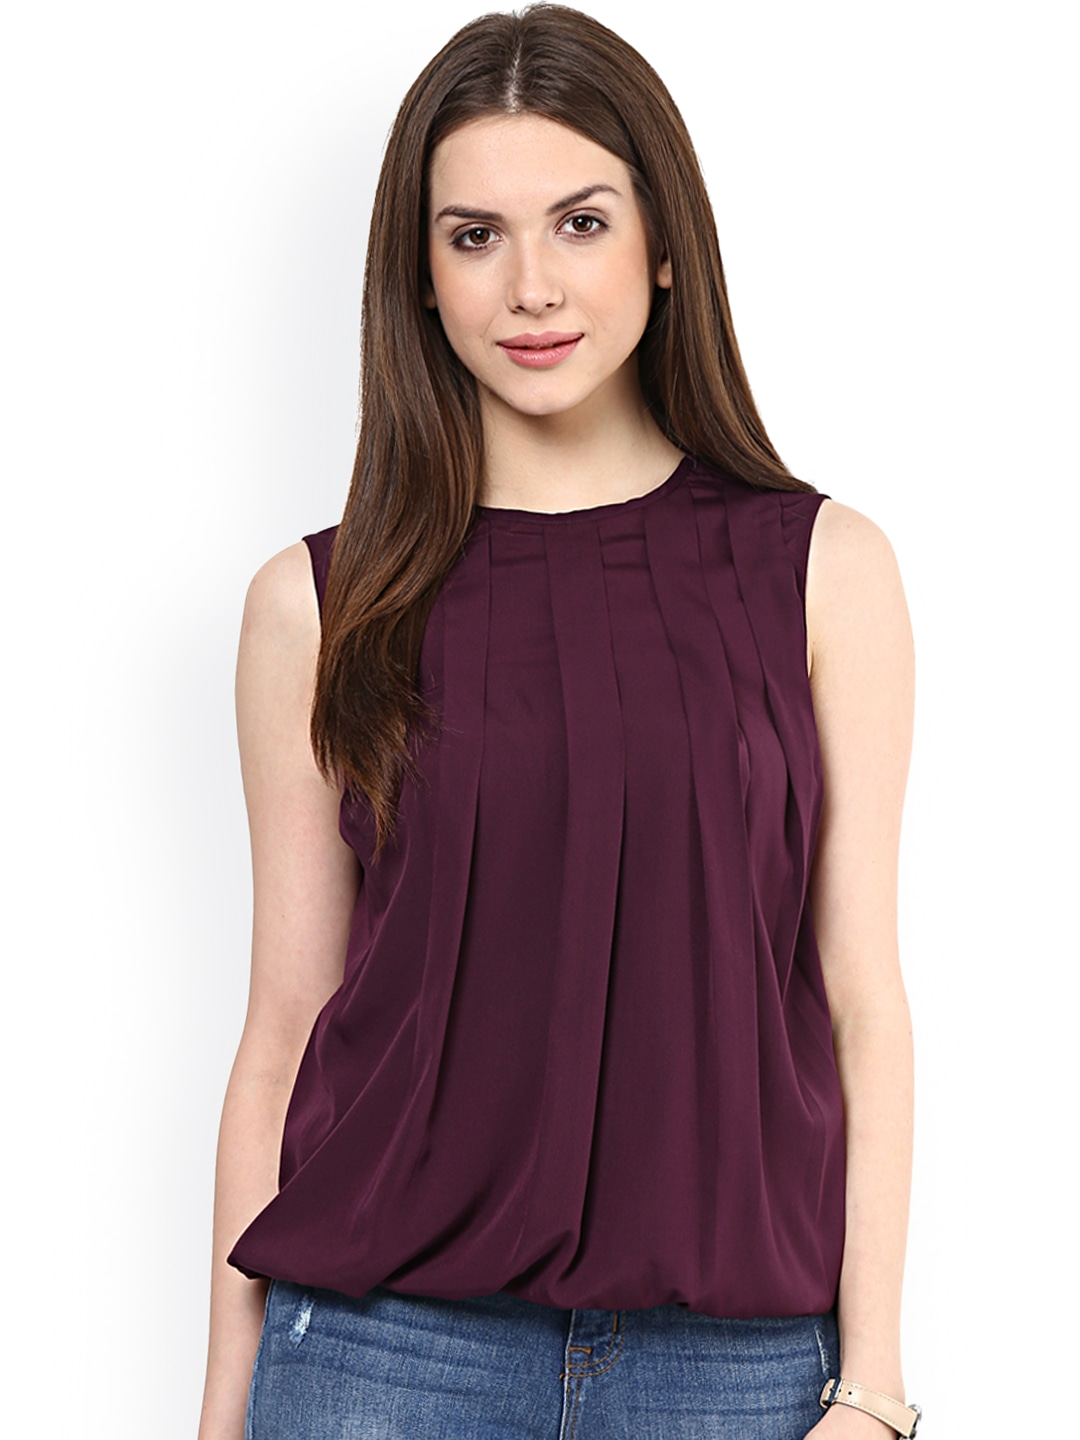 Shop women's clothing from floral tops to women's athleisure, dresses, women's jeans and more. Free standard shipping when you join mediacrucialxa.cf Rewards.